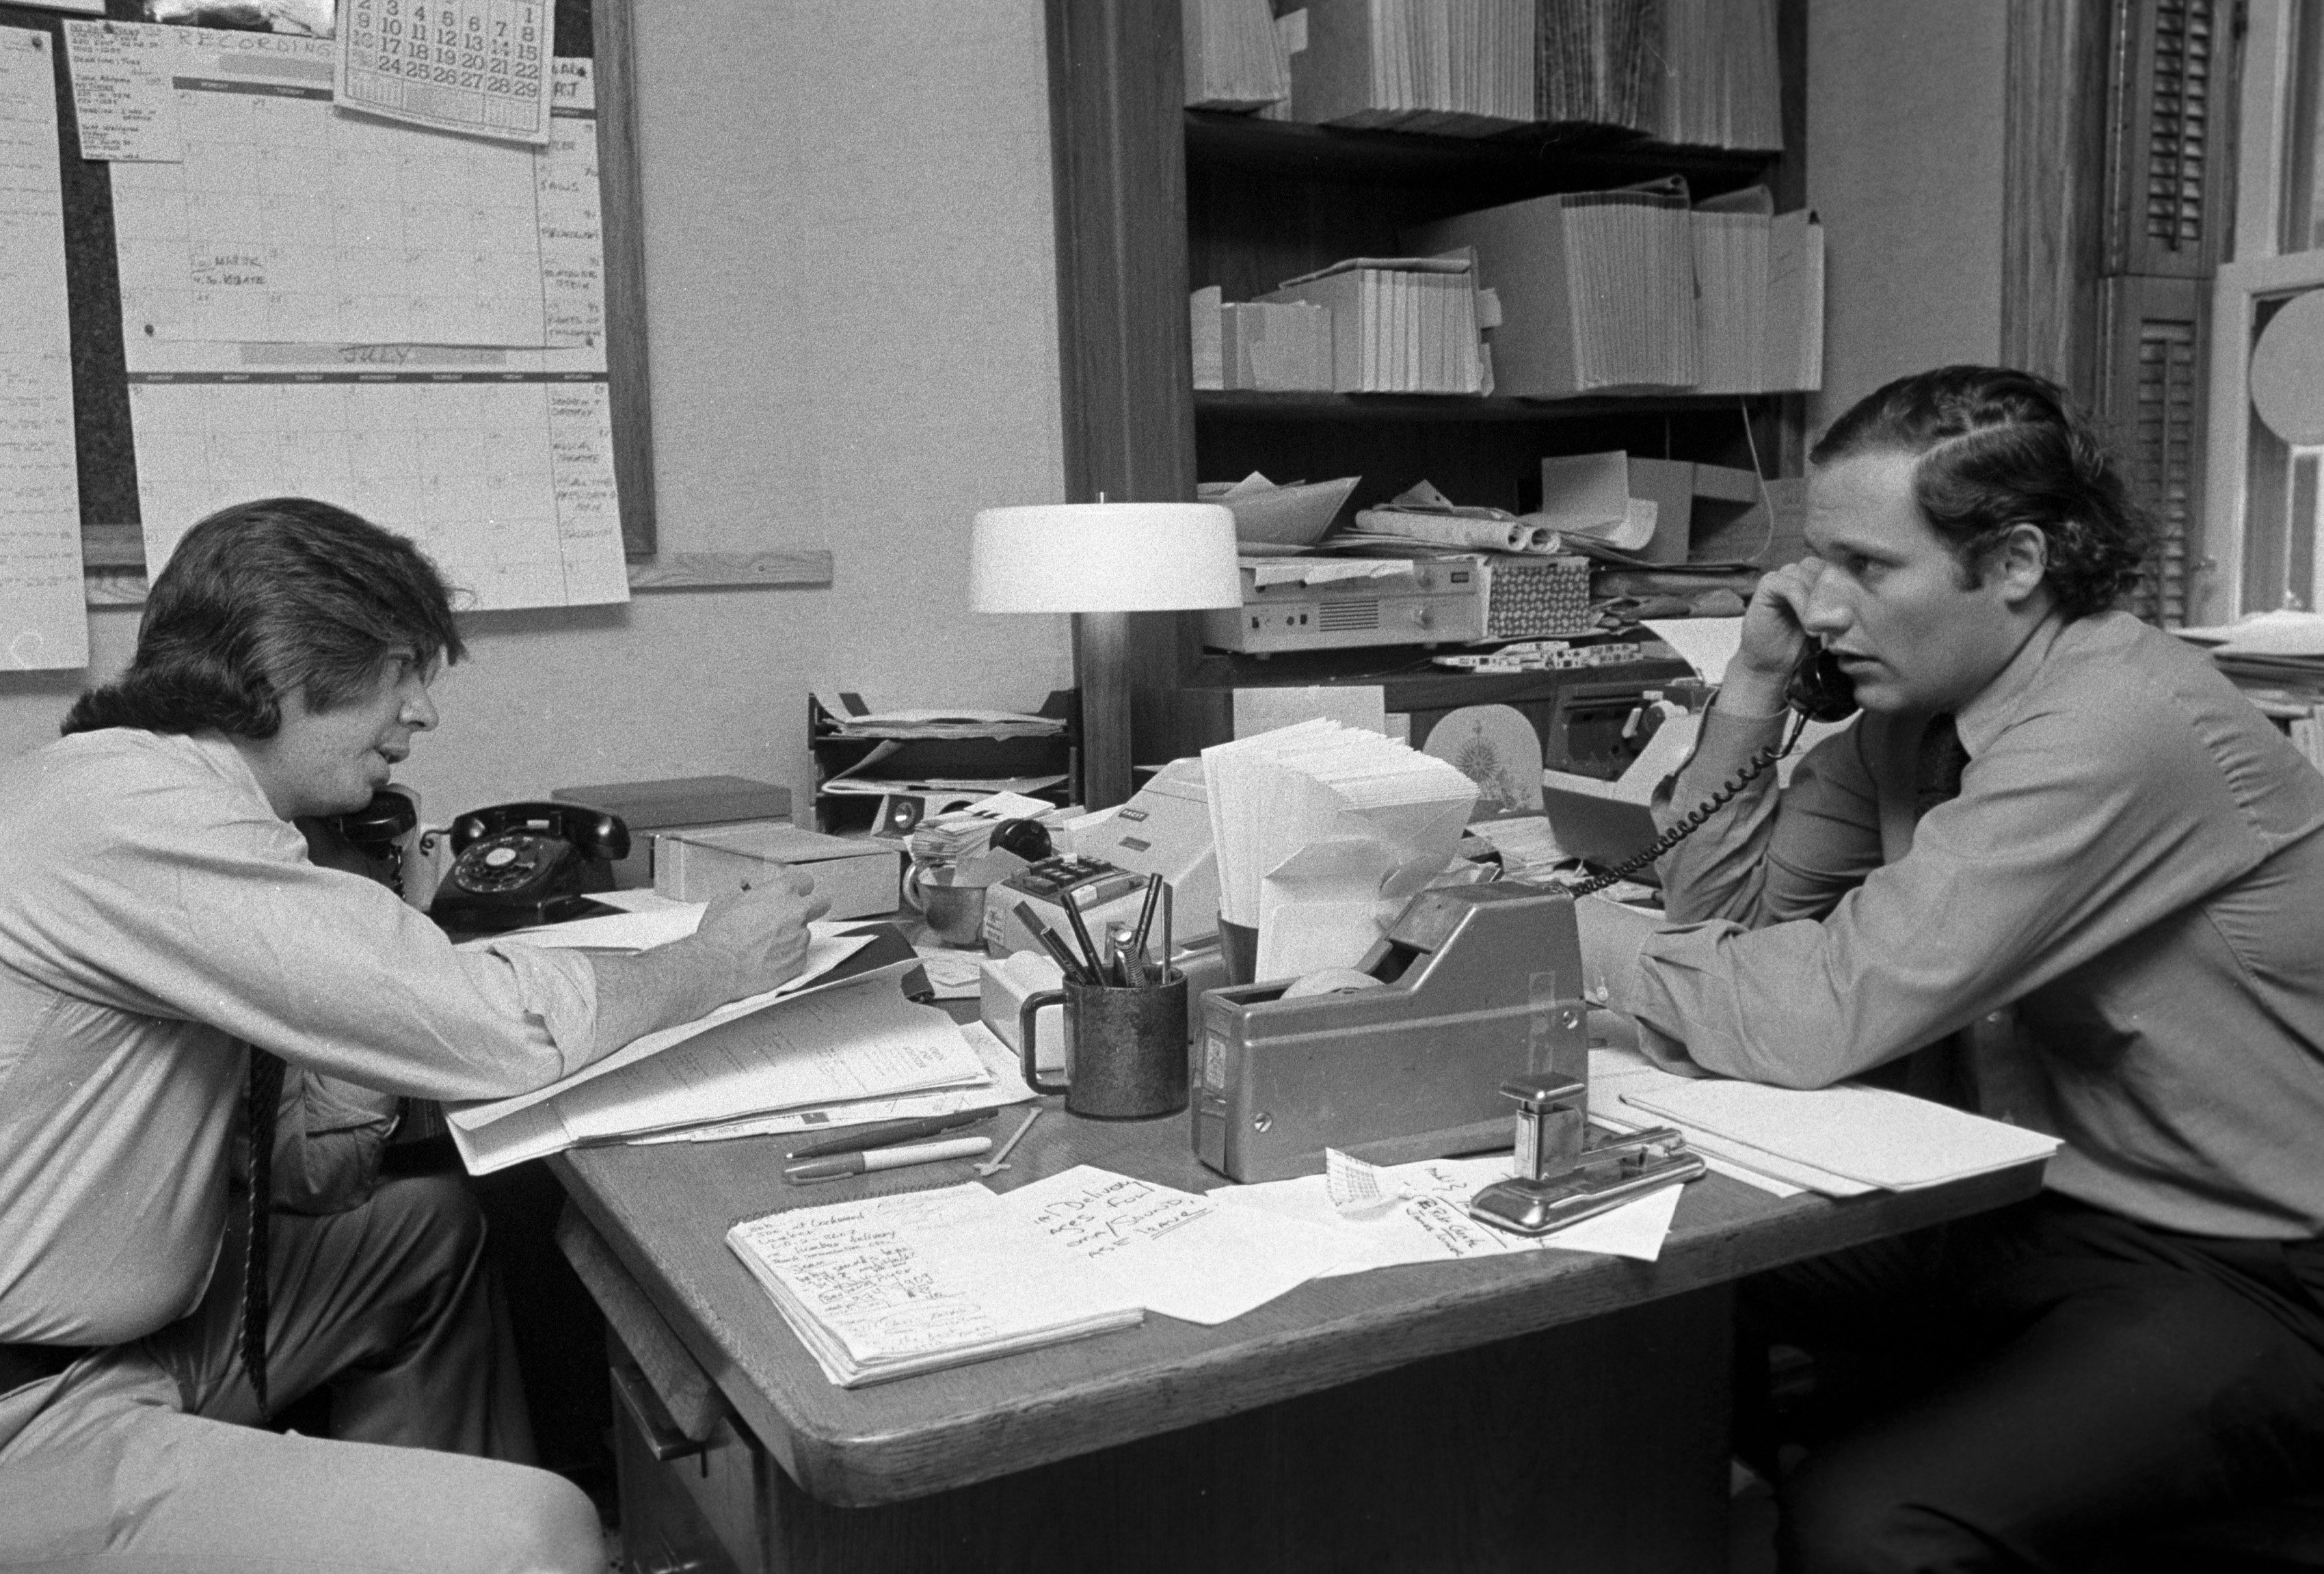 Journalists Carl Bernstein (L) and Bob Woodward (R), whose reporting on the Watergate incident won a Pulitzer Prize, making phone calls on June 17, 1974 in New York City.